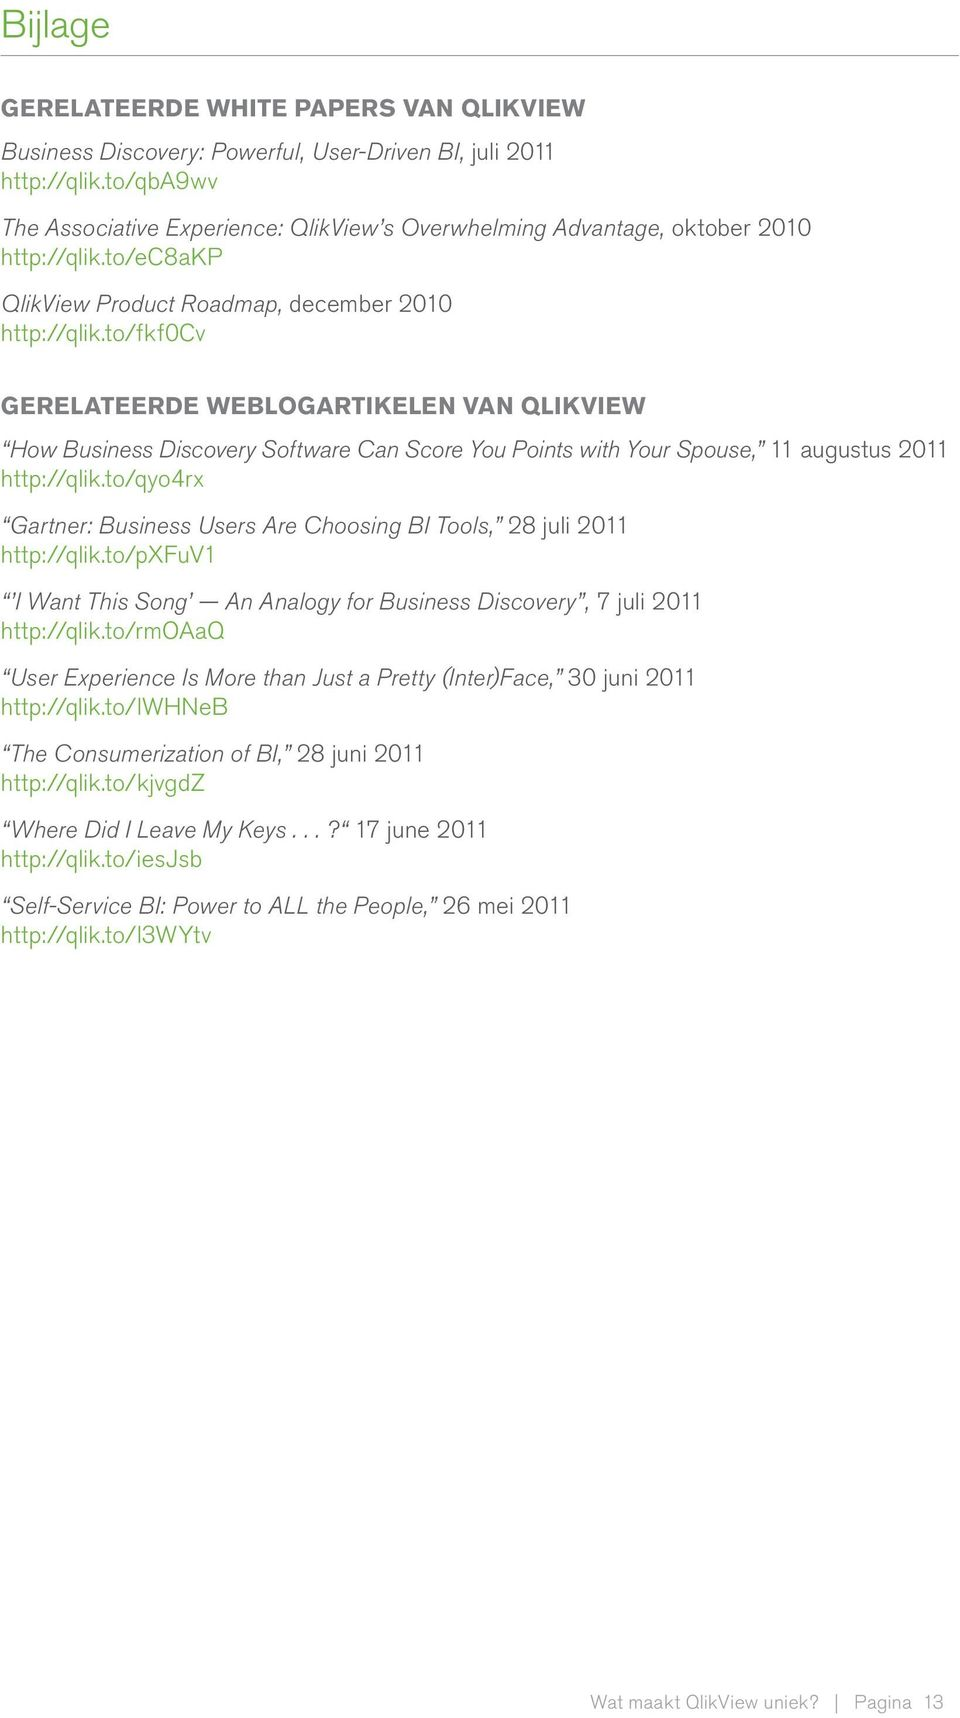 to/fkf0cv GERELATEERDE WEBLOGARTIKELEN VAN QLIKVIEW How Business Discovery Software Can Score You Points with Your Spouse, 11 augustus 2011 http://qlik.